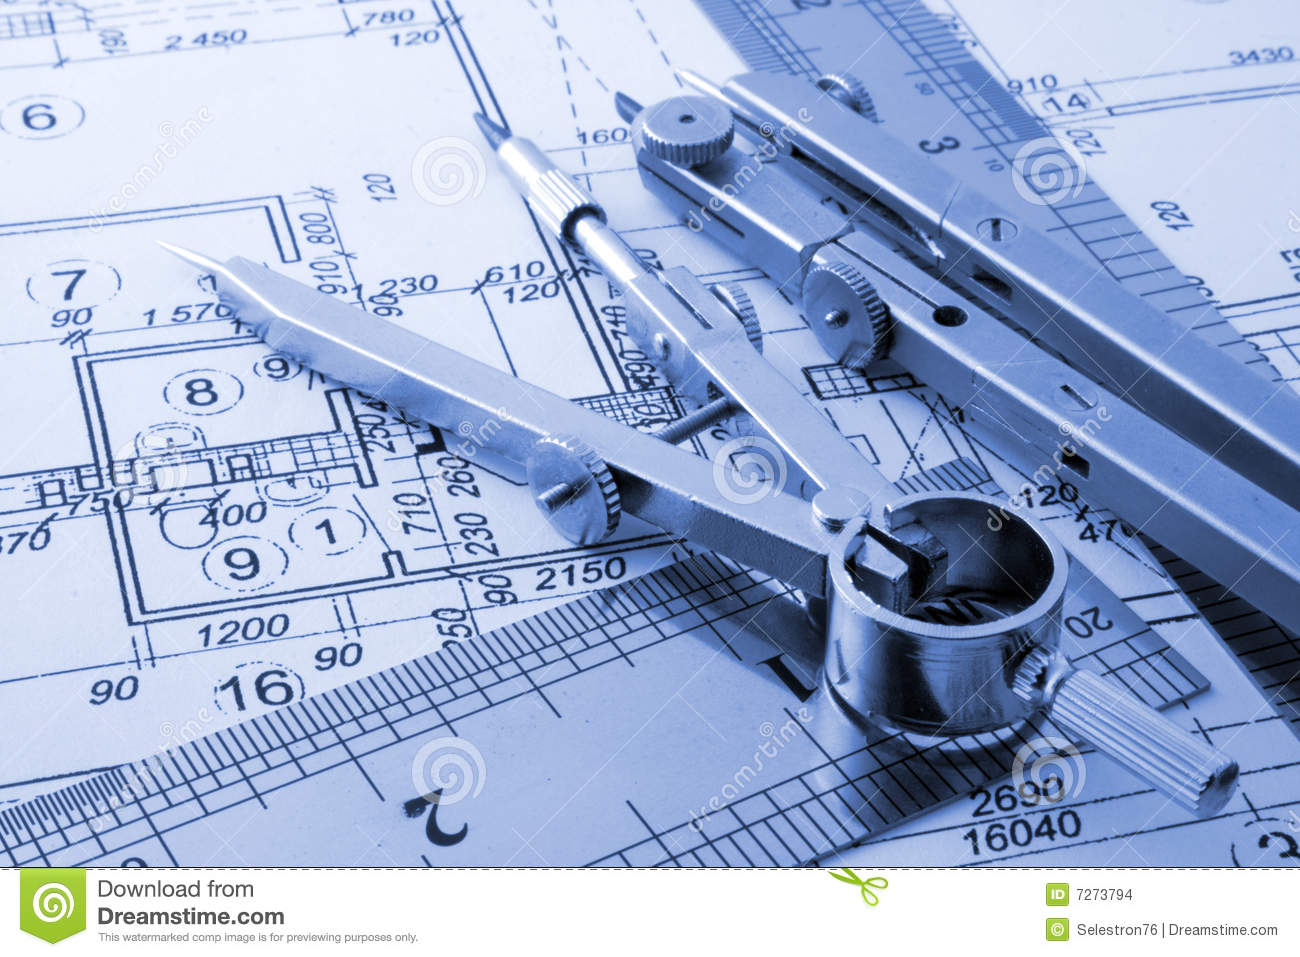 Architecture blueprint stock photo image of backgrounds 7273794 download architecture blueprint stock photo image of backgrounds 7273794 malvernweather Image collections